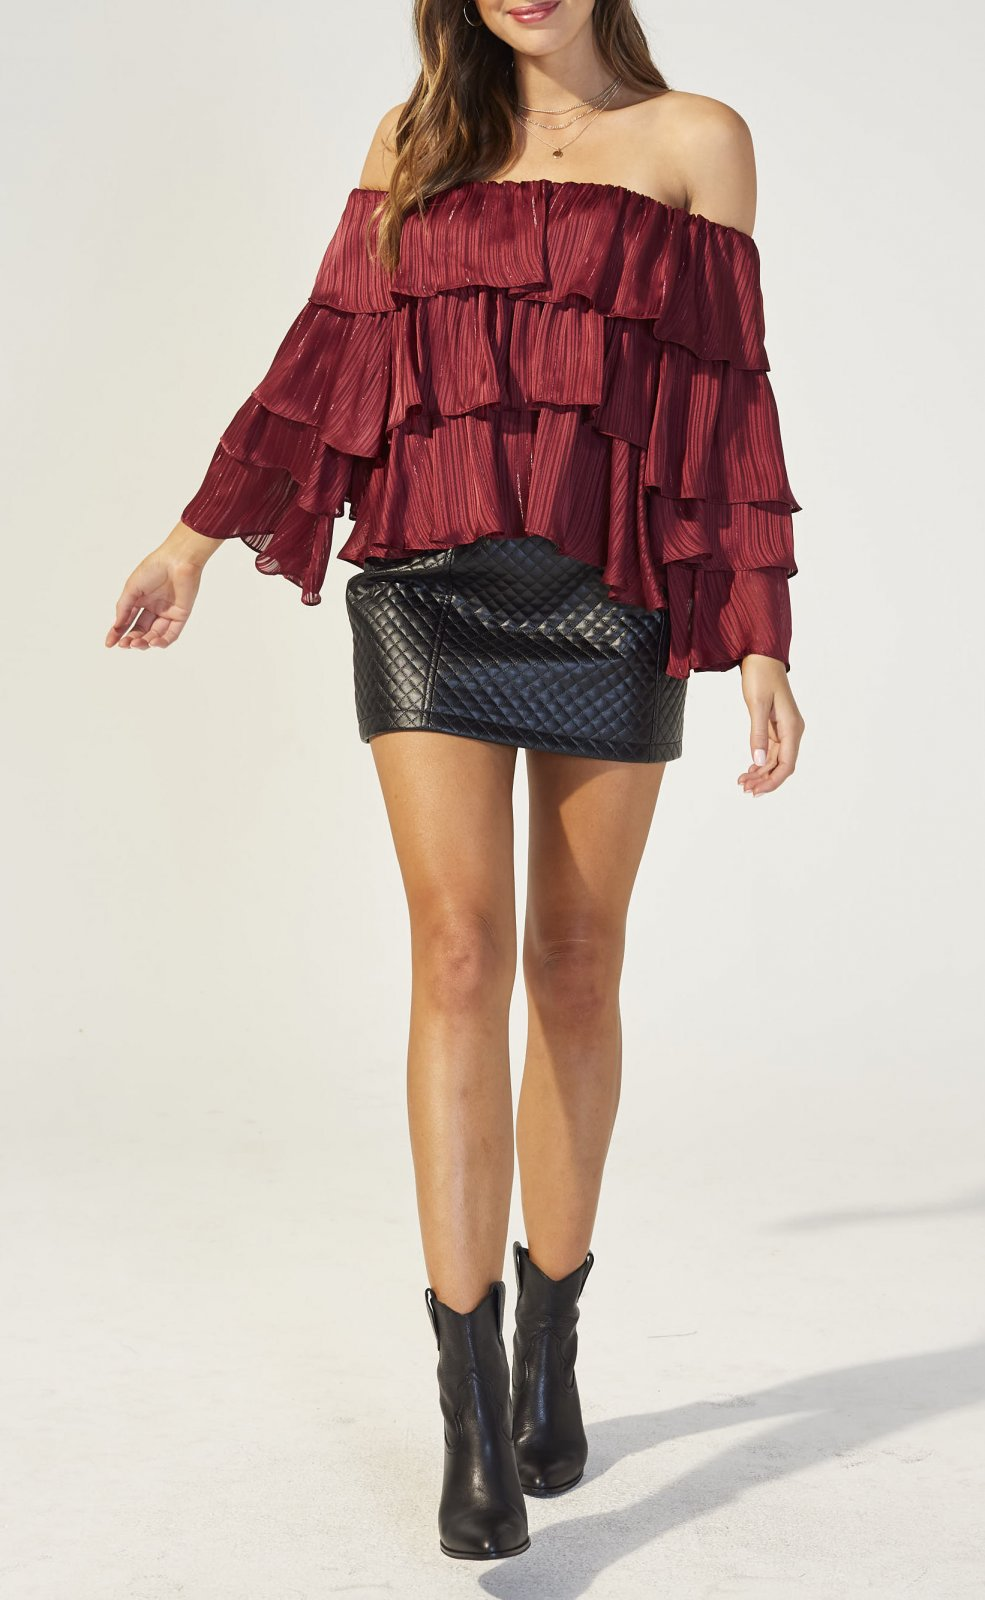 MinkPink In the Moment Burgundy Top